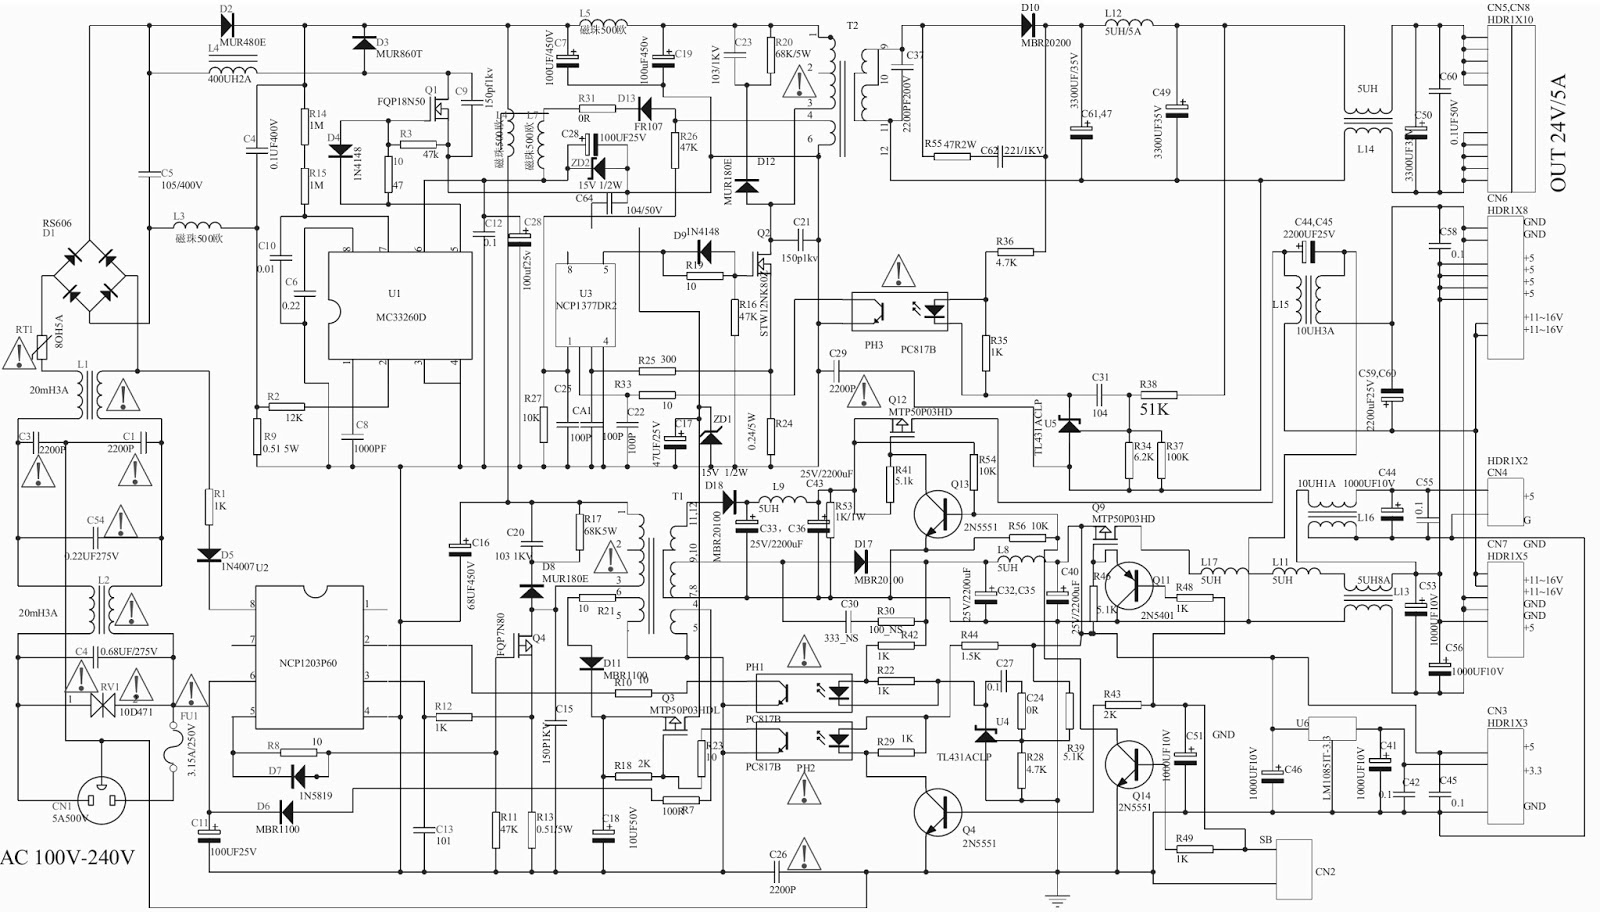 lcd tv main power supply smps circuit schematic diagram wiring samsung dishwasher wiring diagram akai lta [ 1600 x 912 Pixel ]